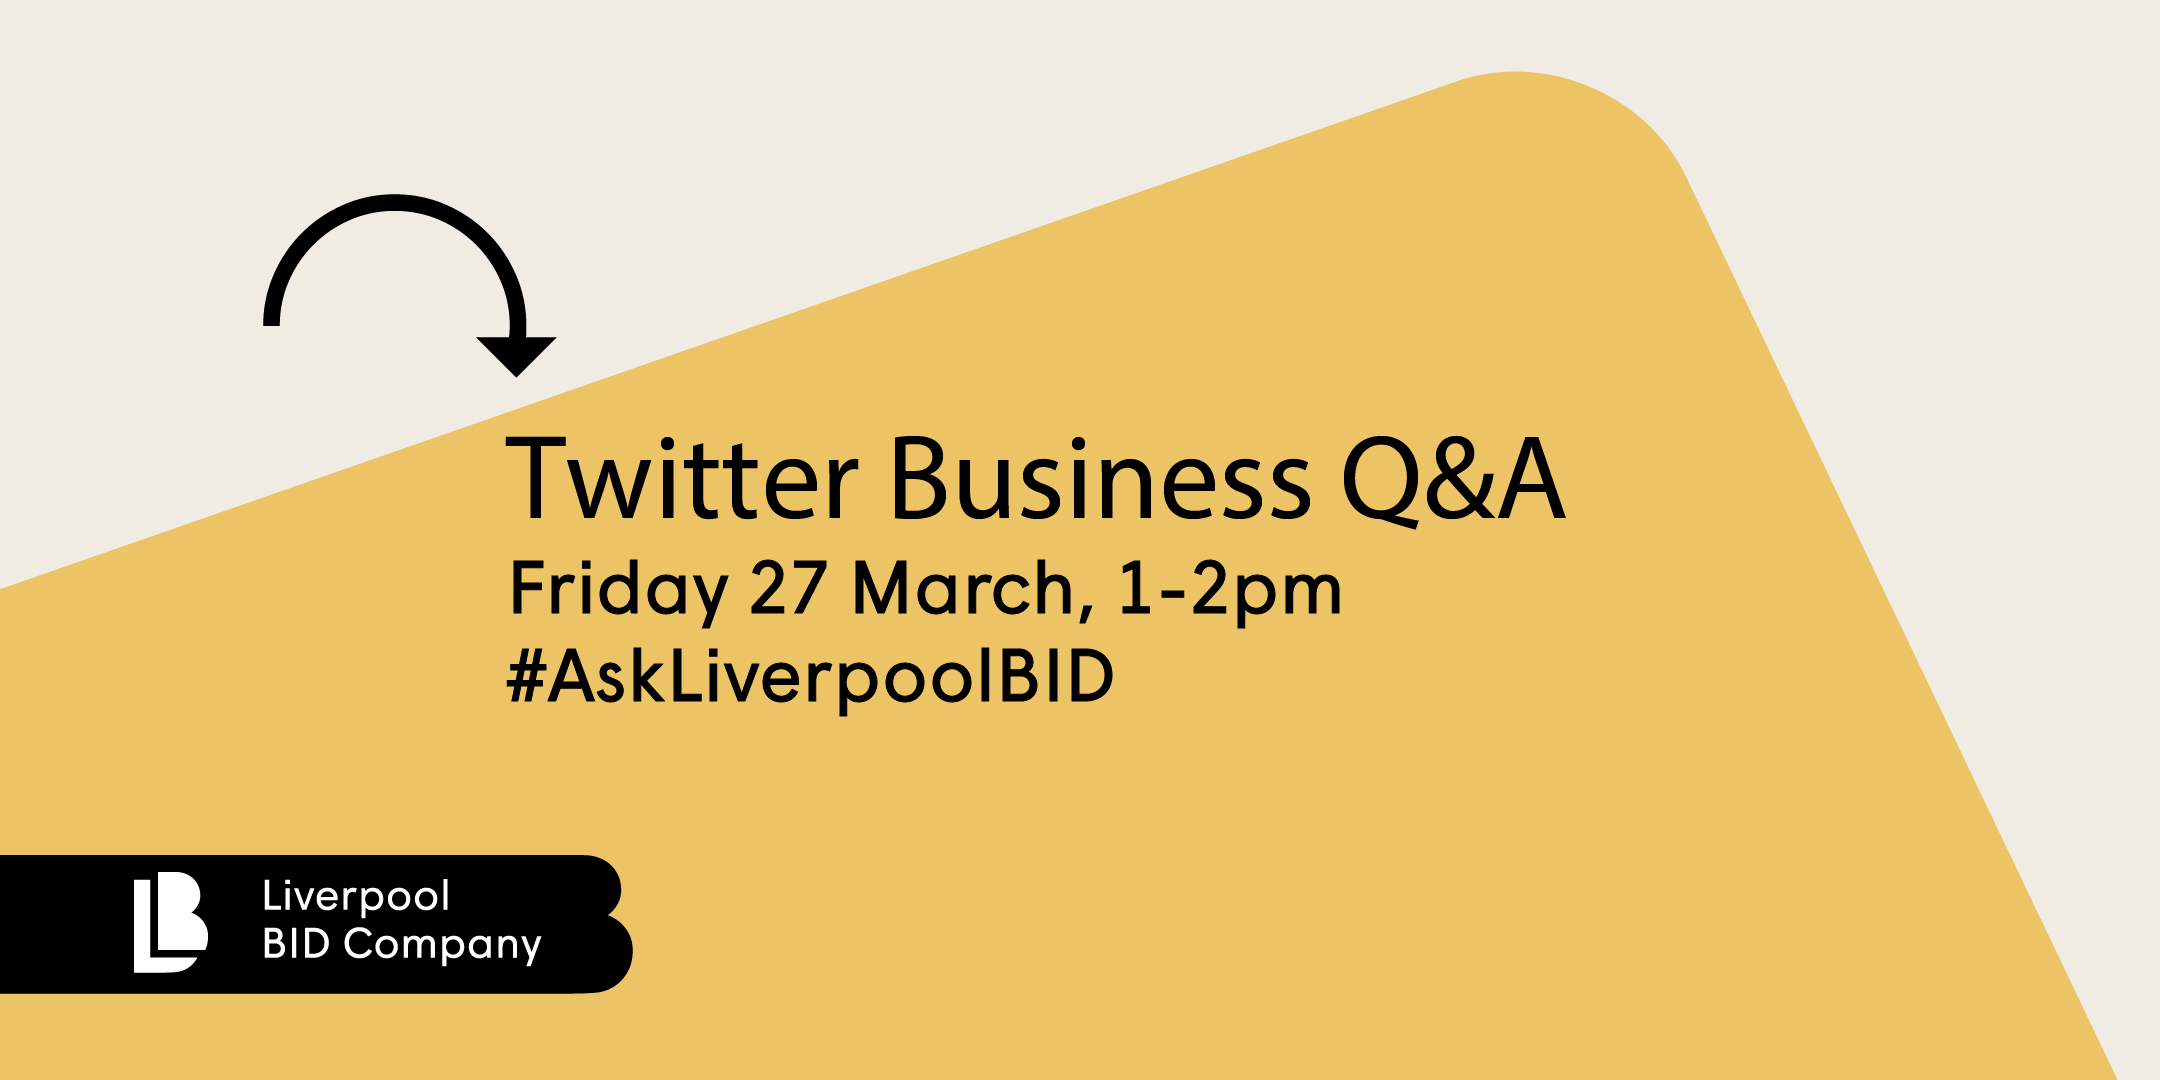 Liverpool BID Company Twitter Business Q&A